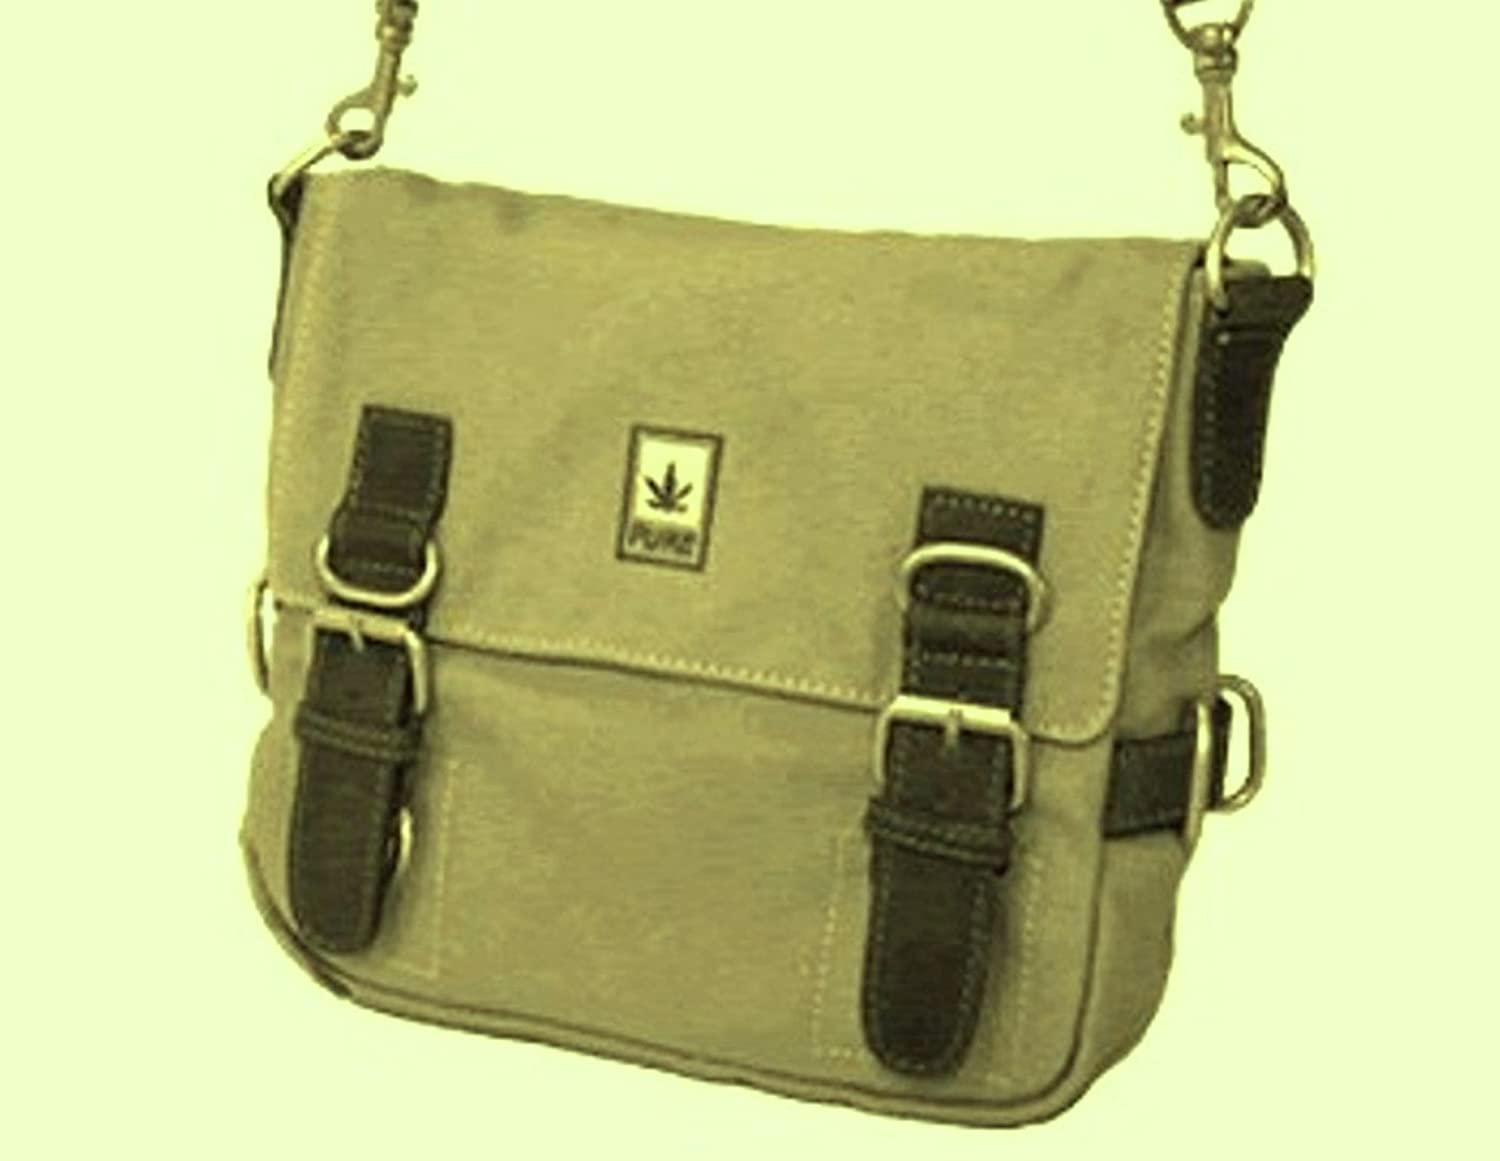 a048499872d8 Hemp HF035 5 Farben Women s Shoulder Bag Pure Hemp  Amazon.co.uk  Sports    Outdoors